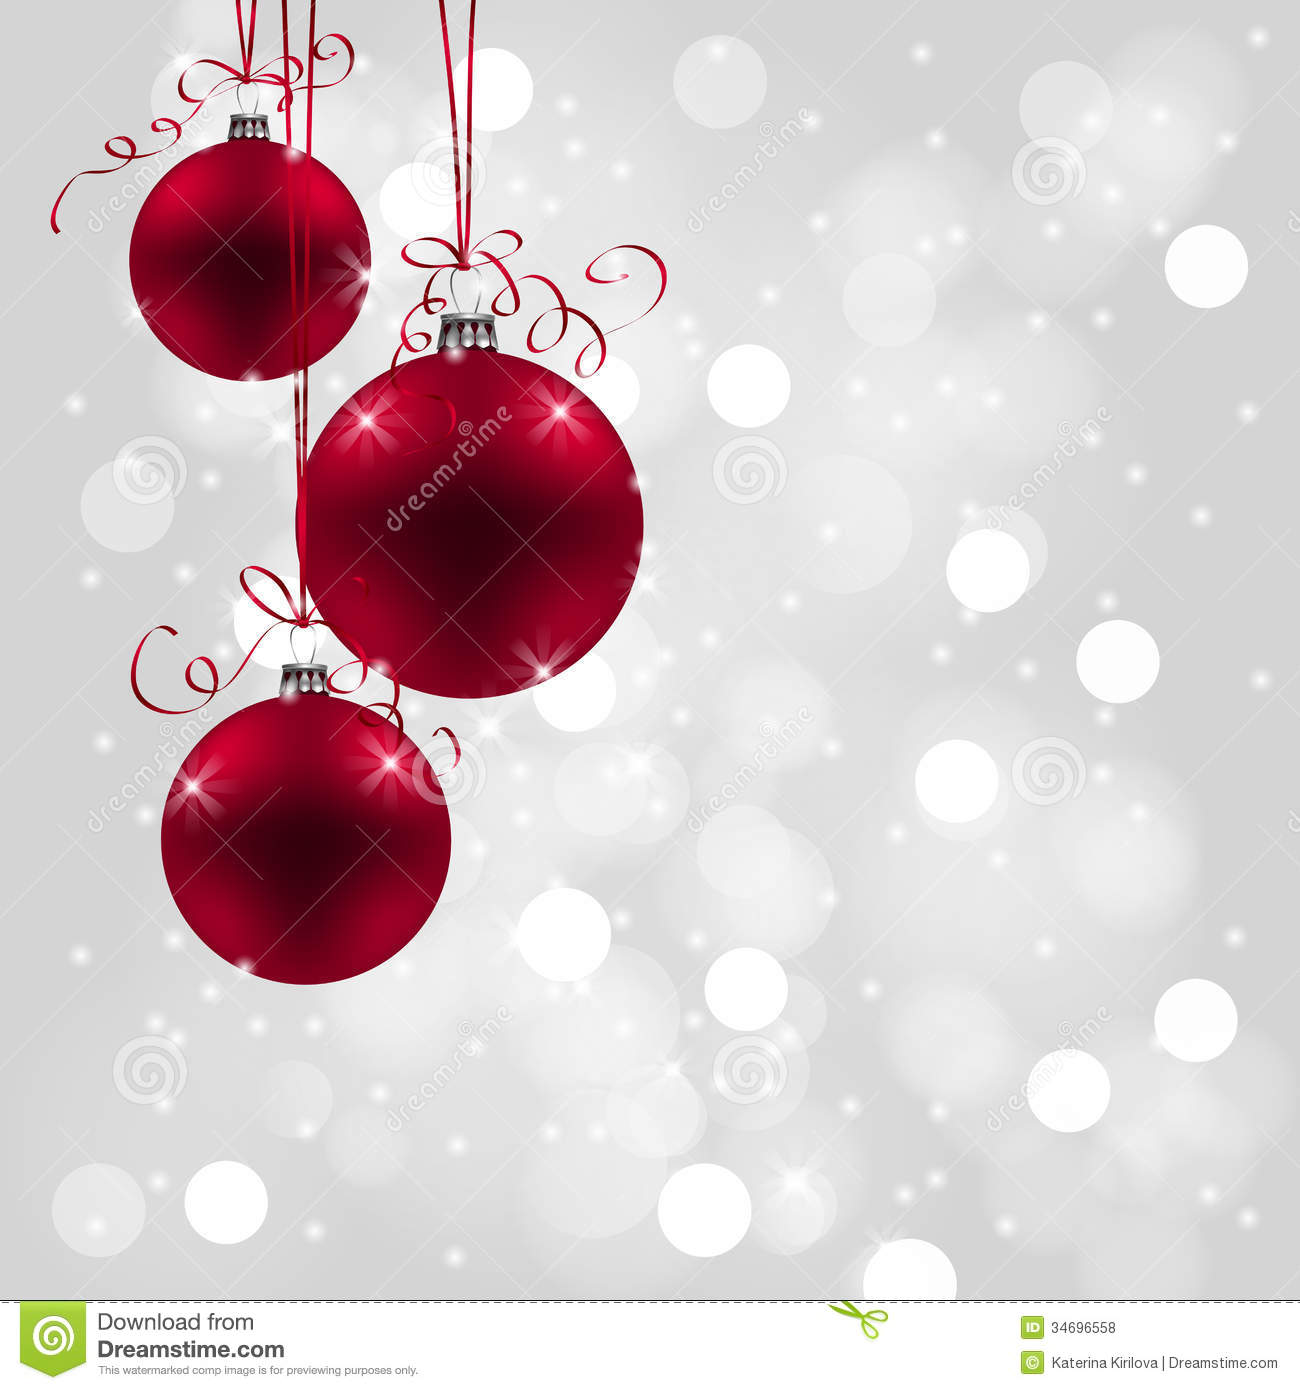 Falling Snow Wallpaper Widescreen Christmas Background Royalty Free Stock Photos Image